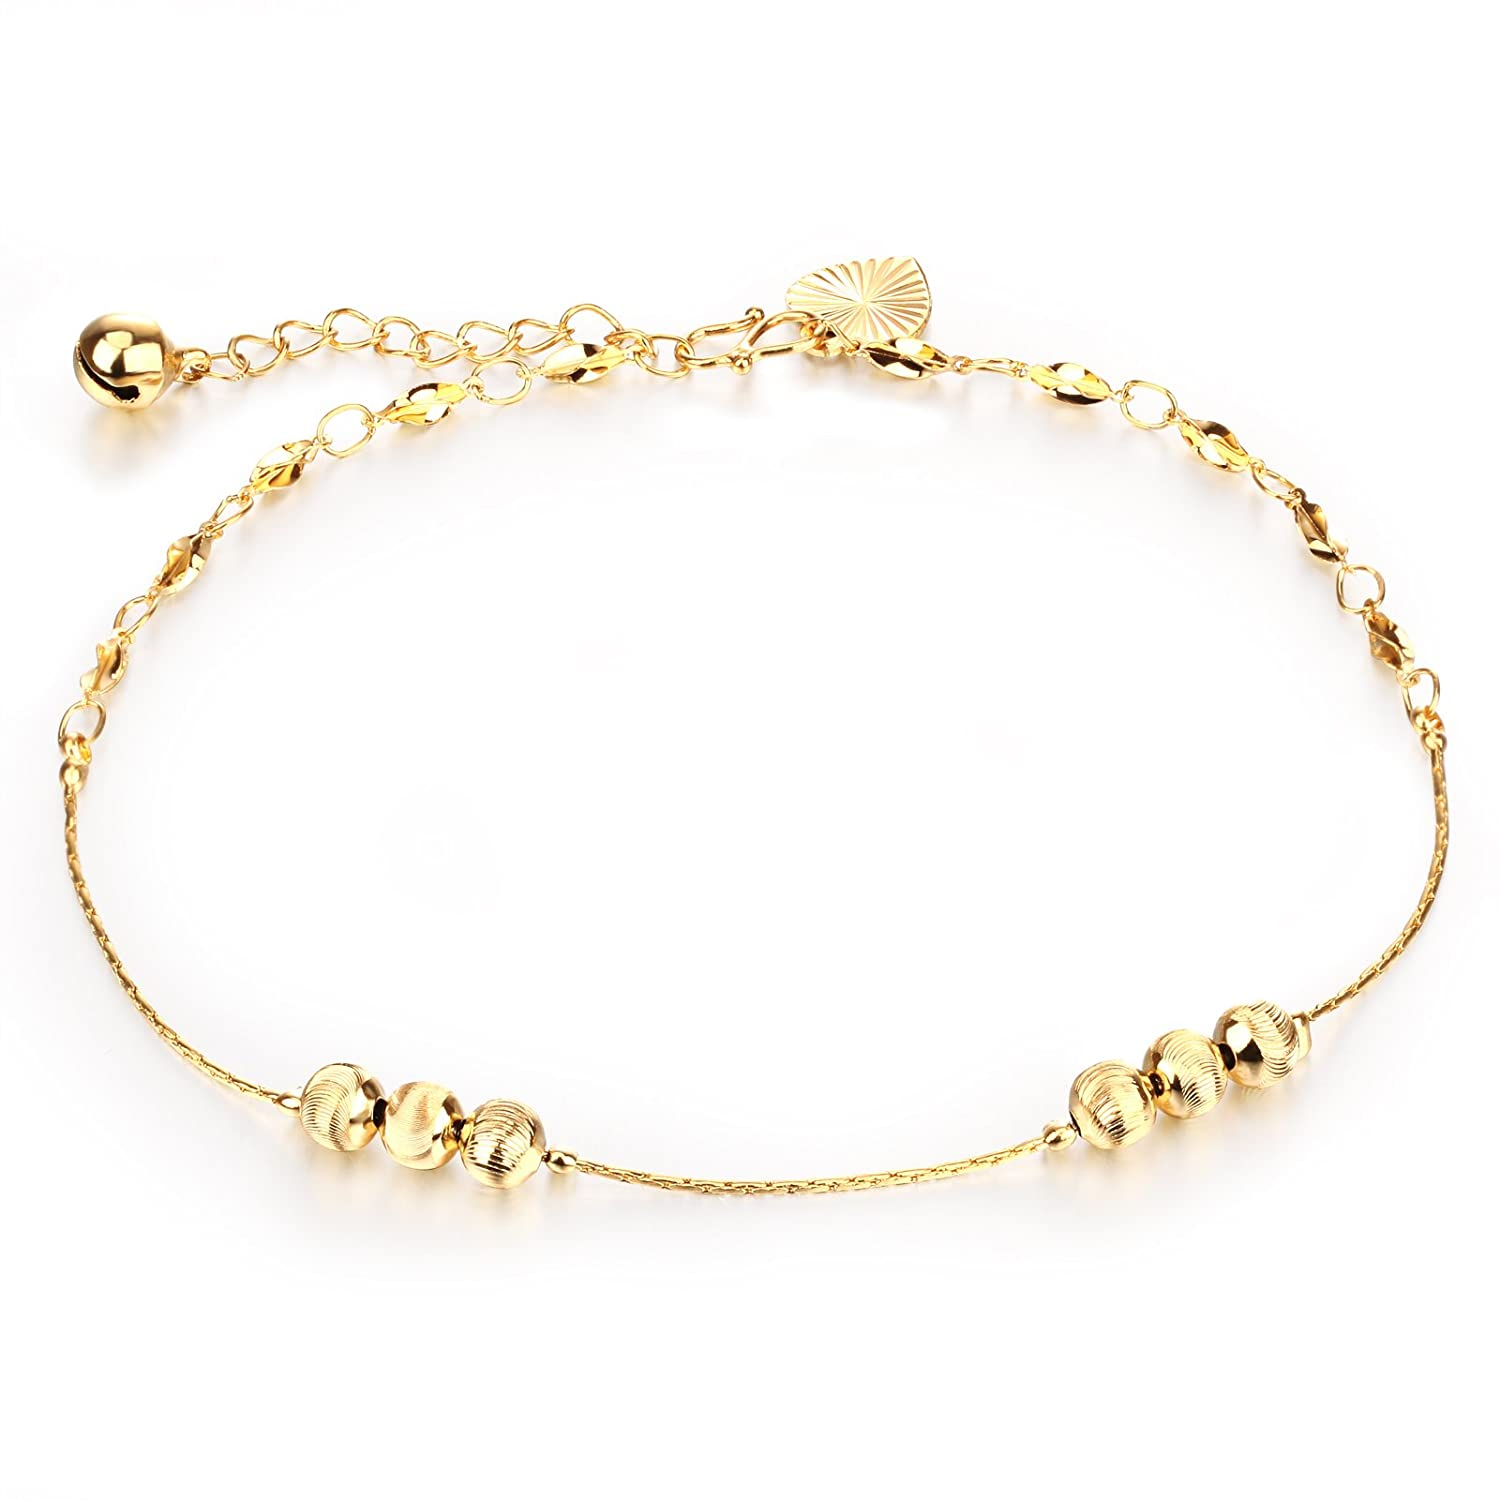 Classical Gold Plated Lantern Accessories Anklet Bracelet Foot Chain Sandal Beach Jewelry